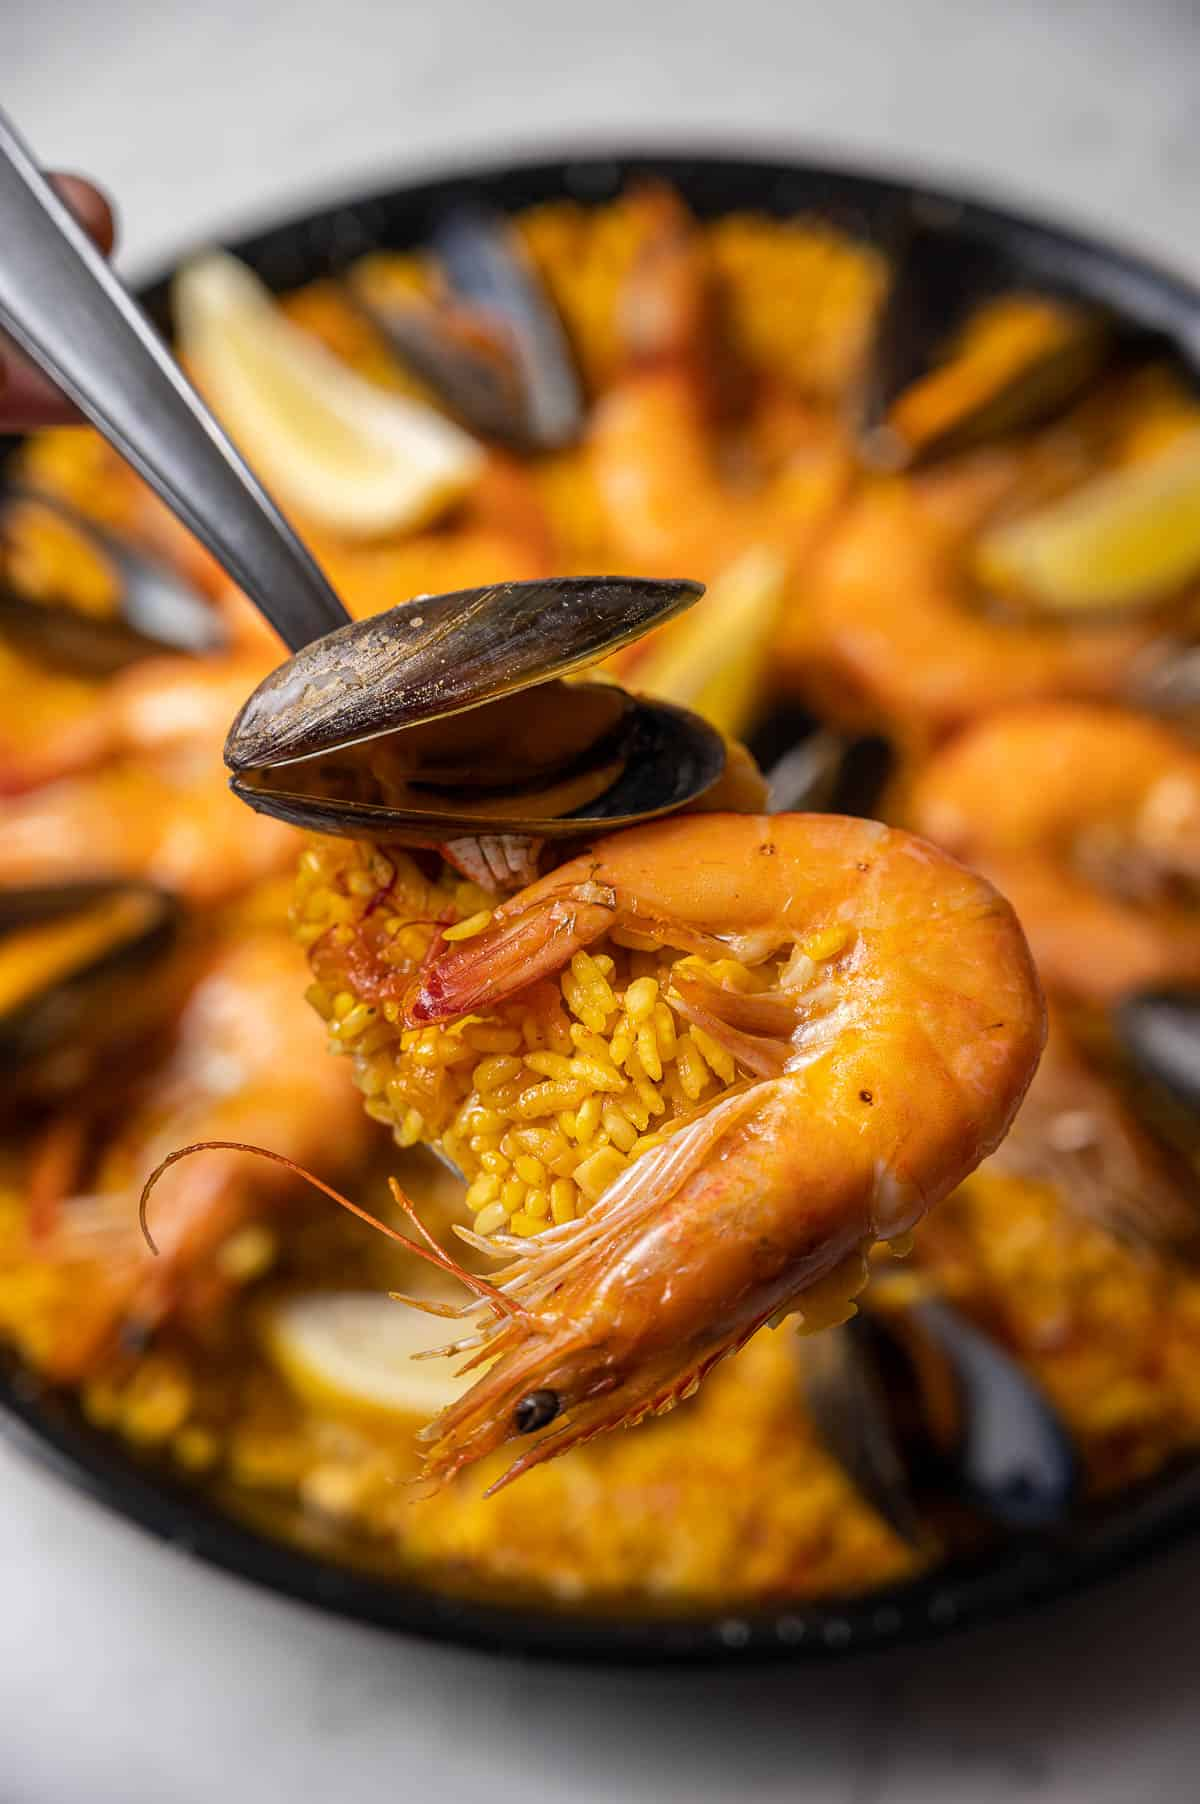 Close up of a spoonful of seafood paella with shrimp and mussels with the rest of the paella in the background.